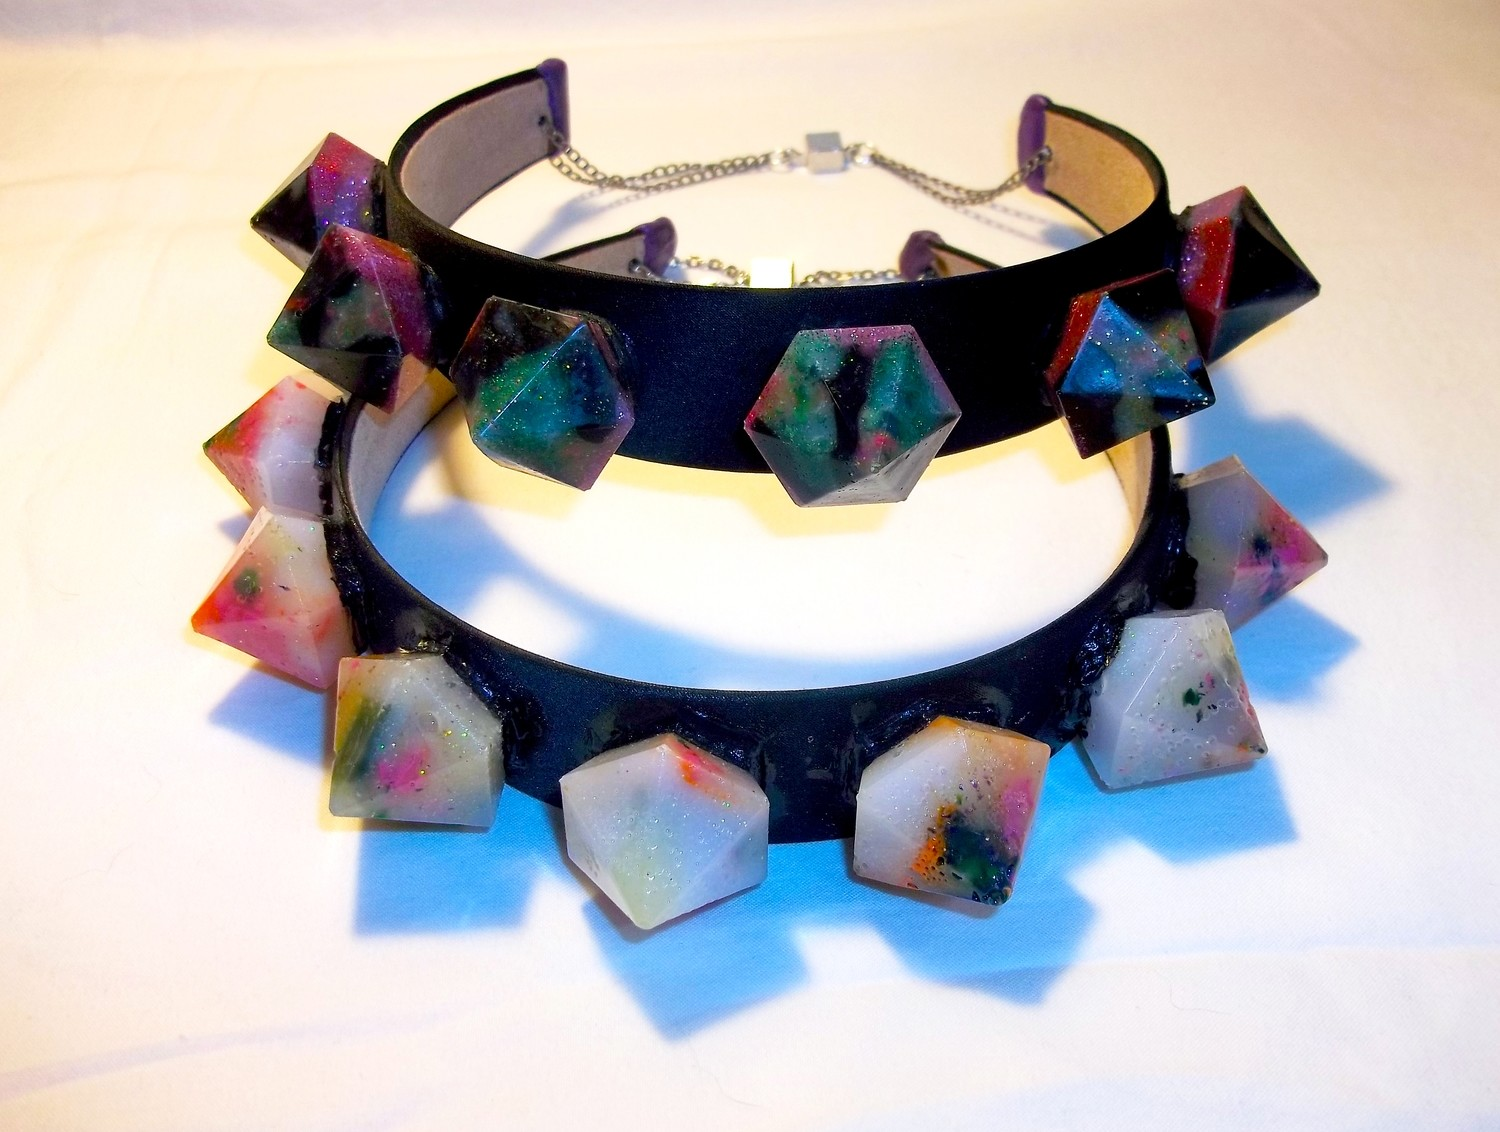 Spiked Chokers